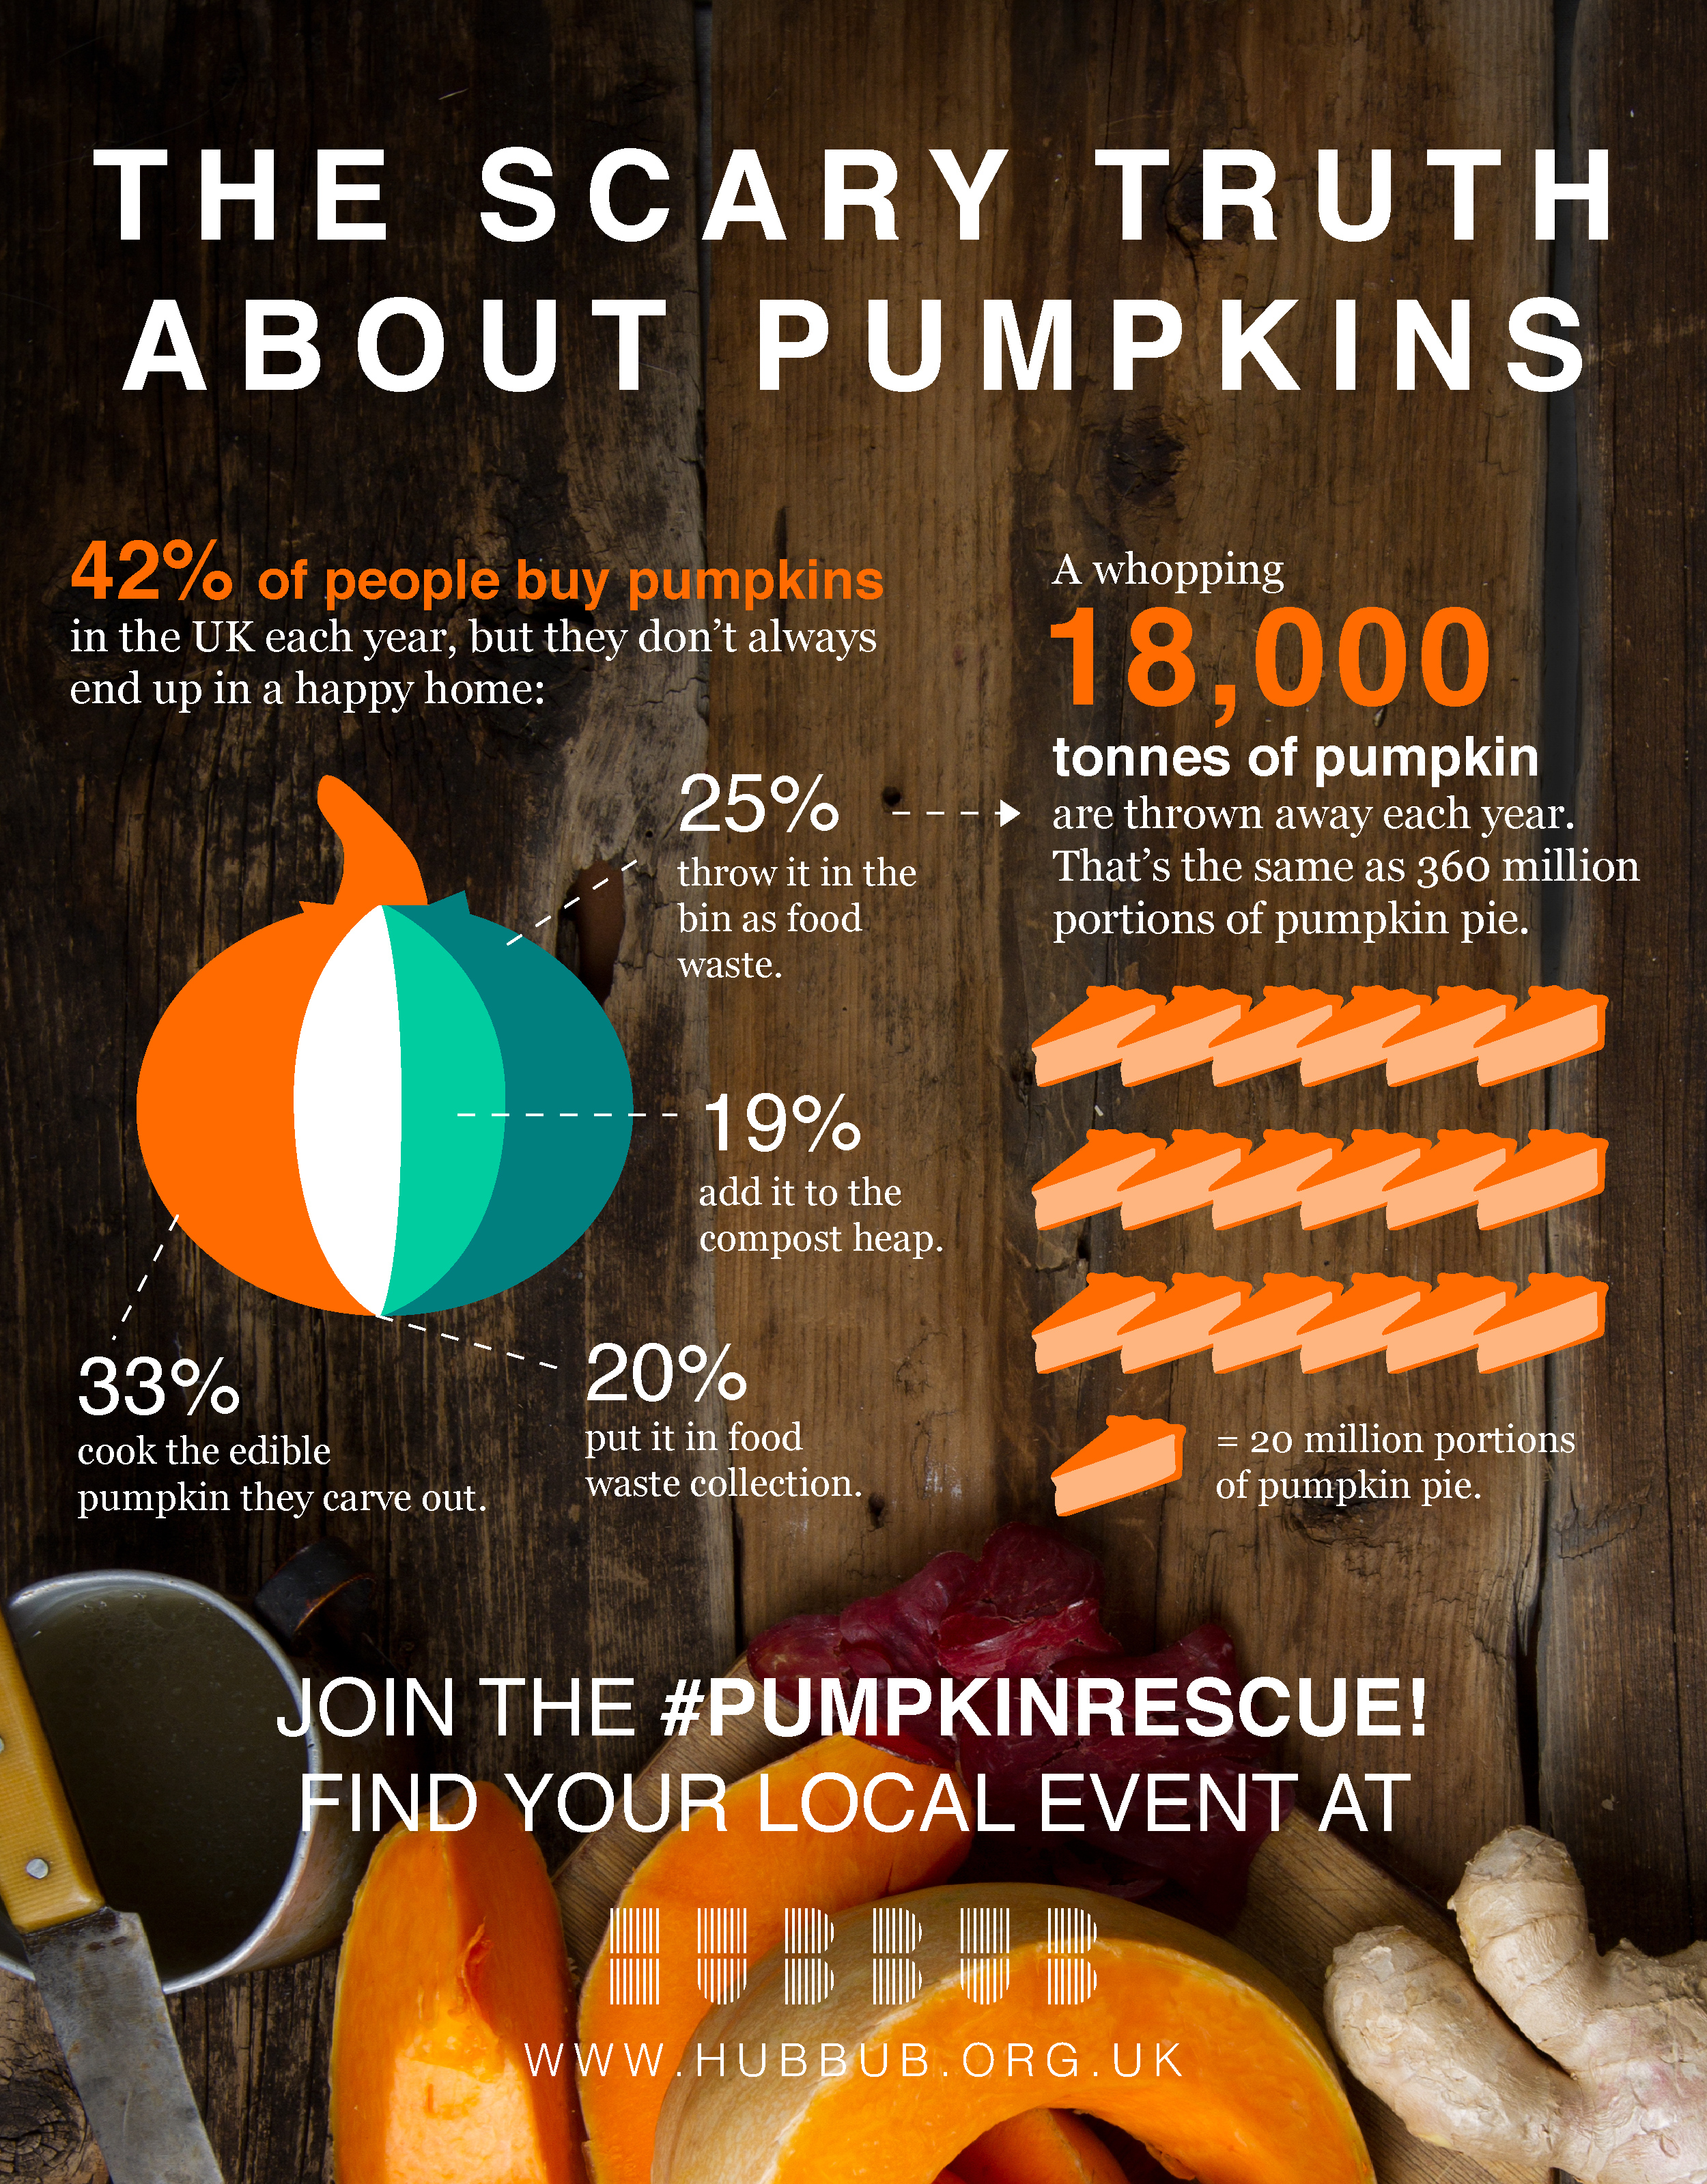 Pumpkin rescue events at Leicestershire Community Kitchens